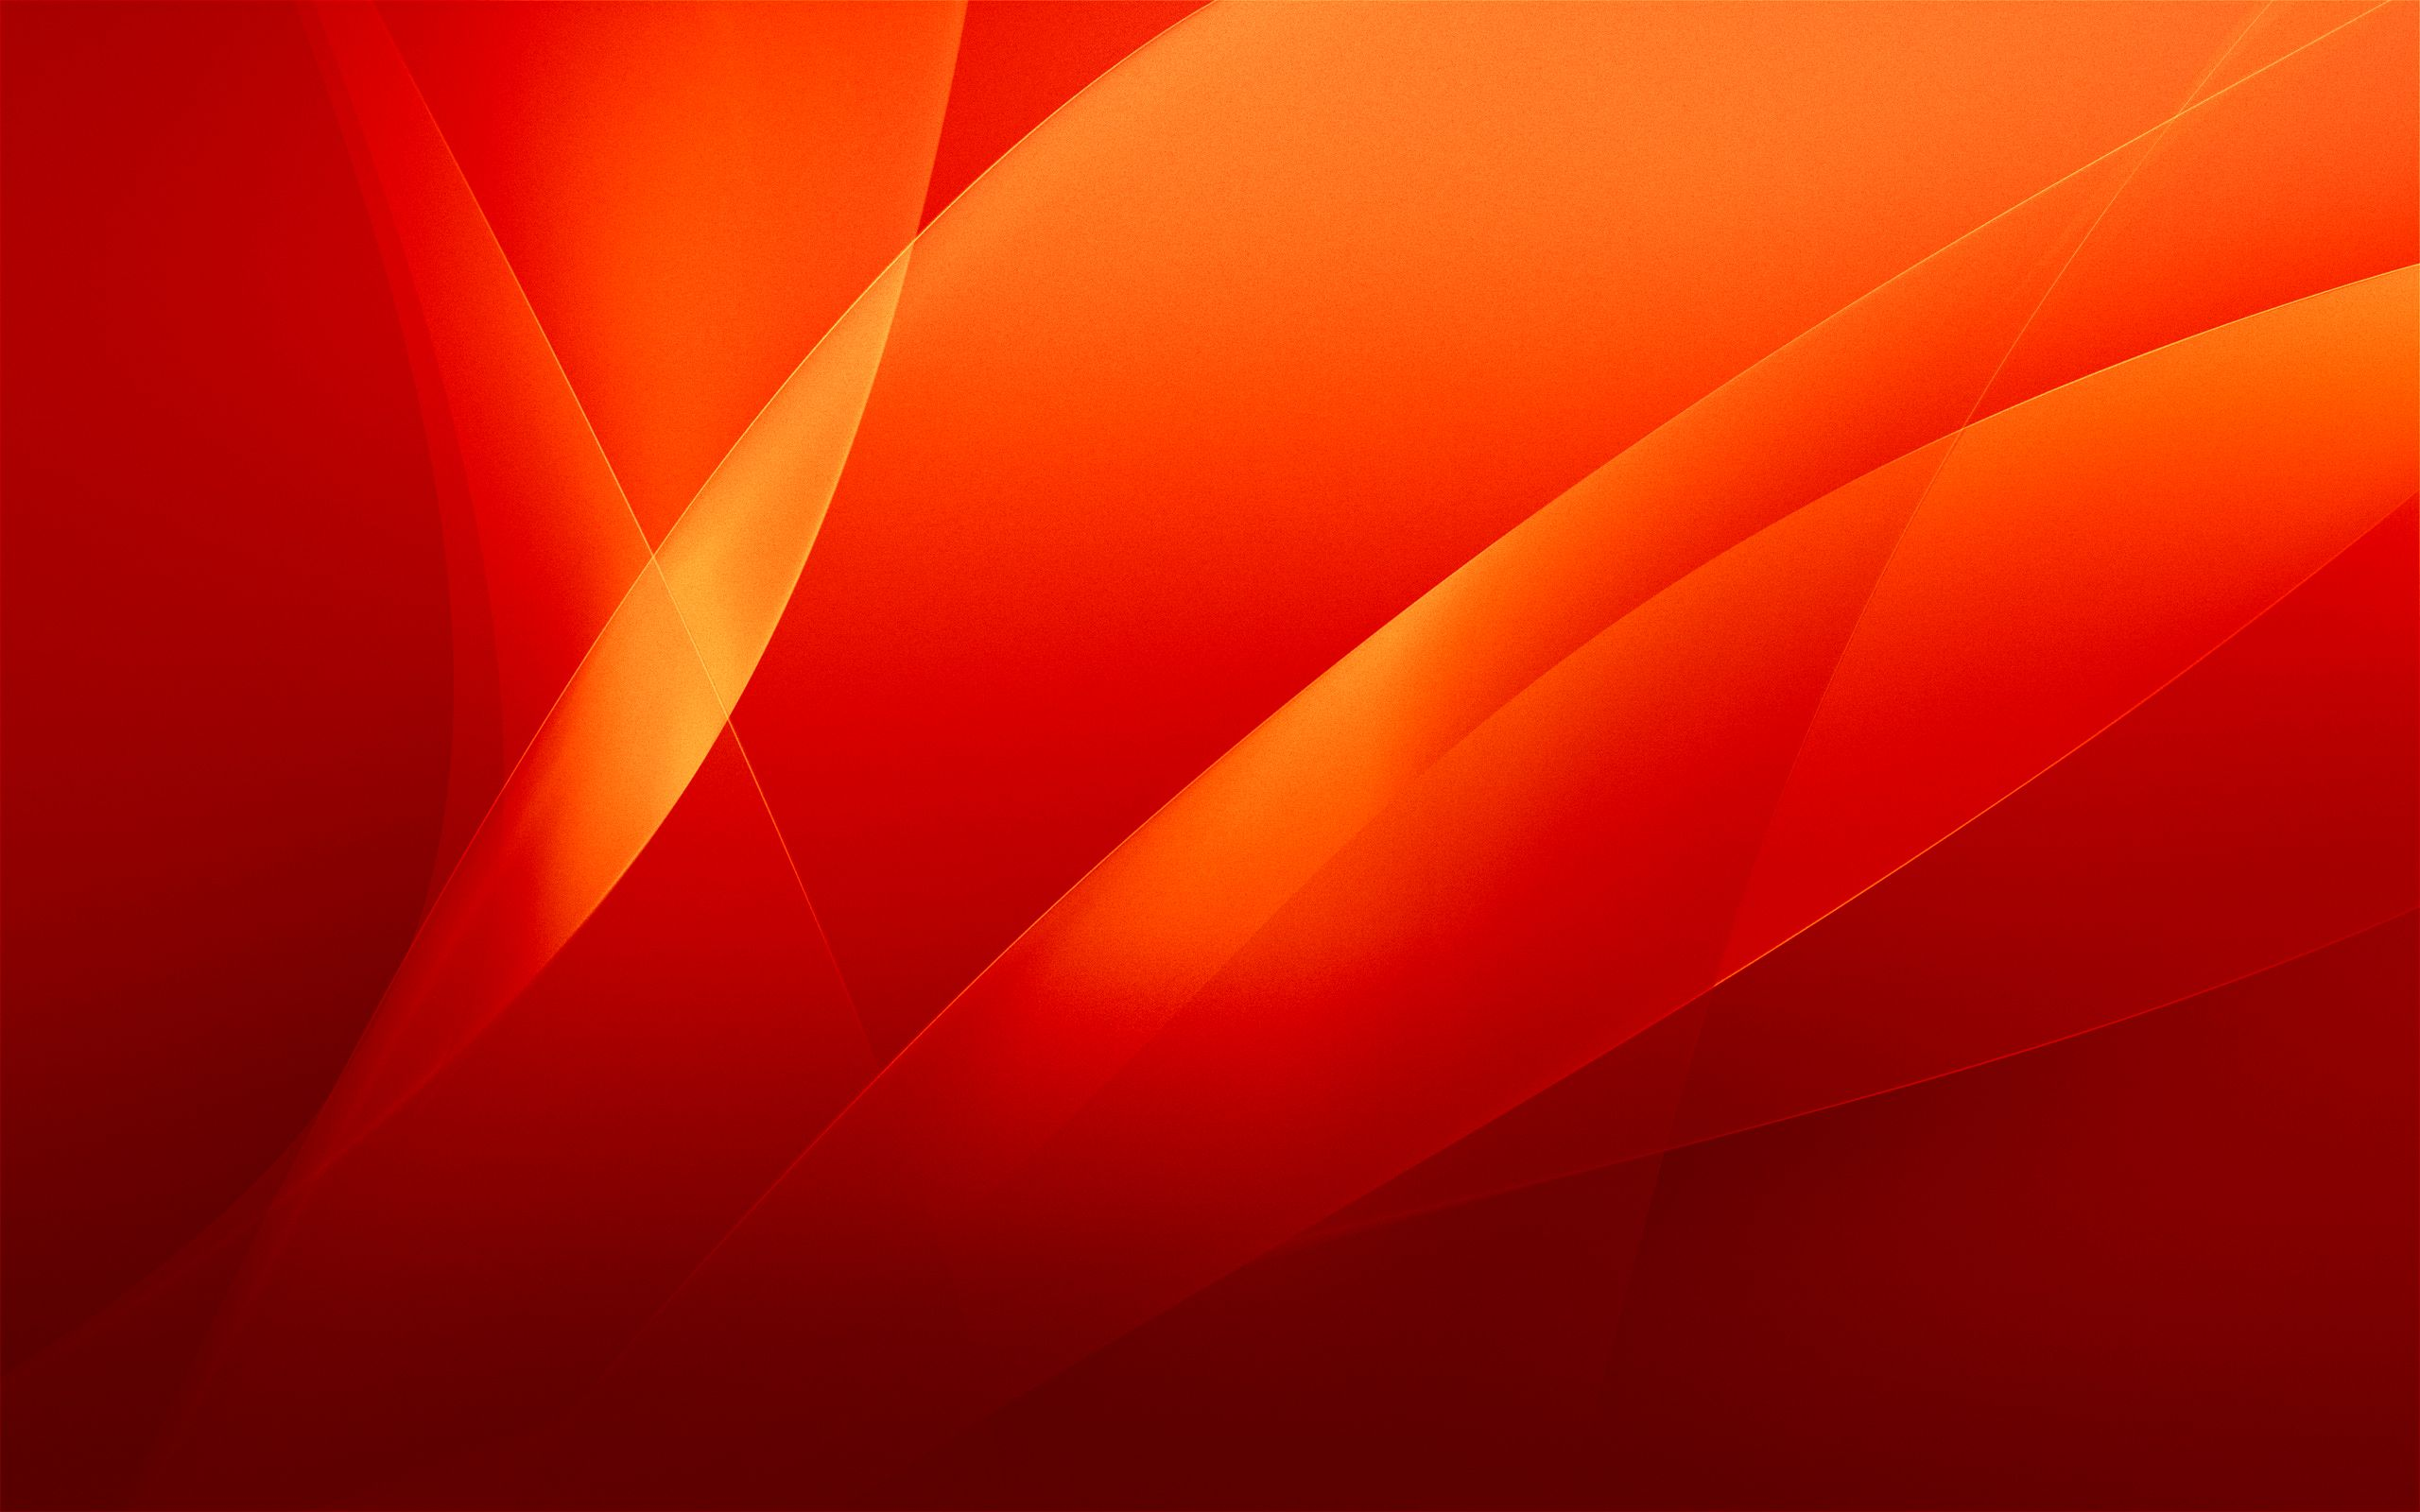 Red Background High Resolution Wallpaper